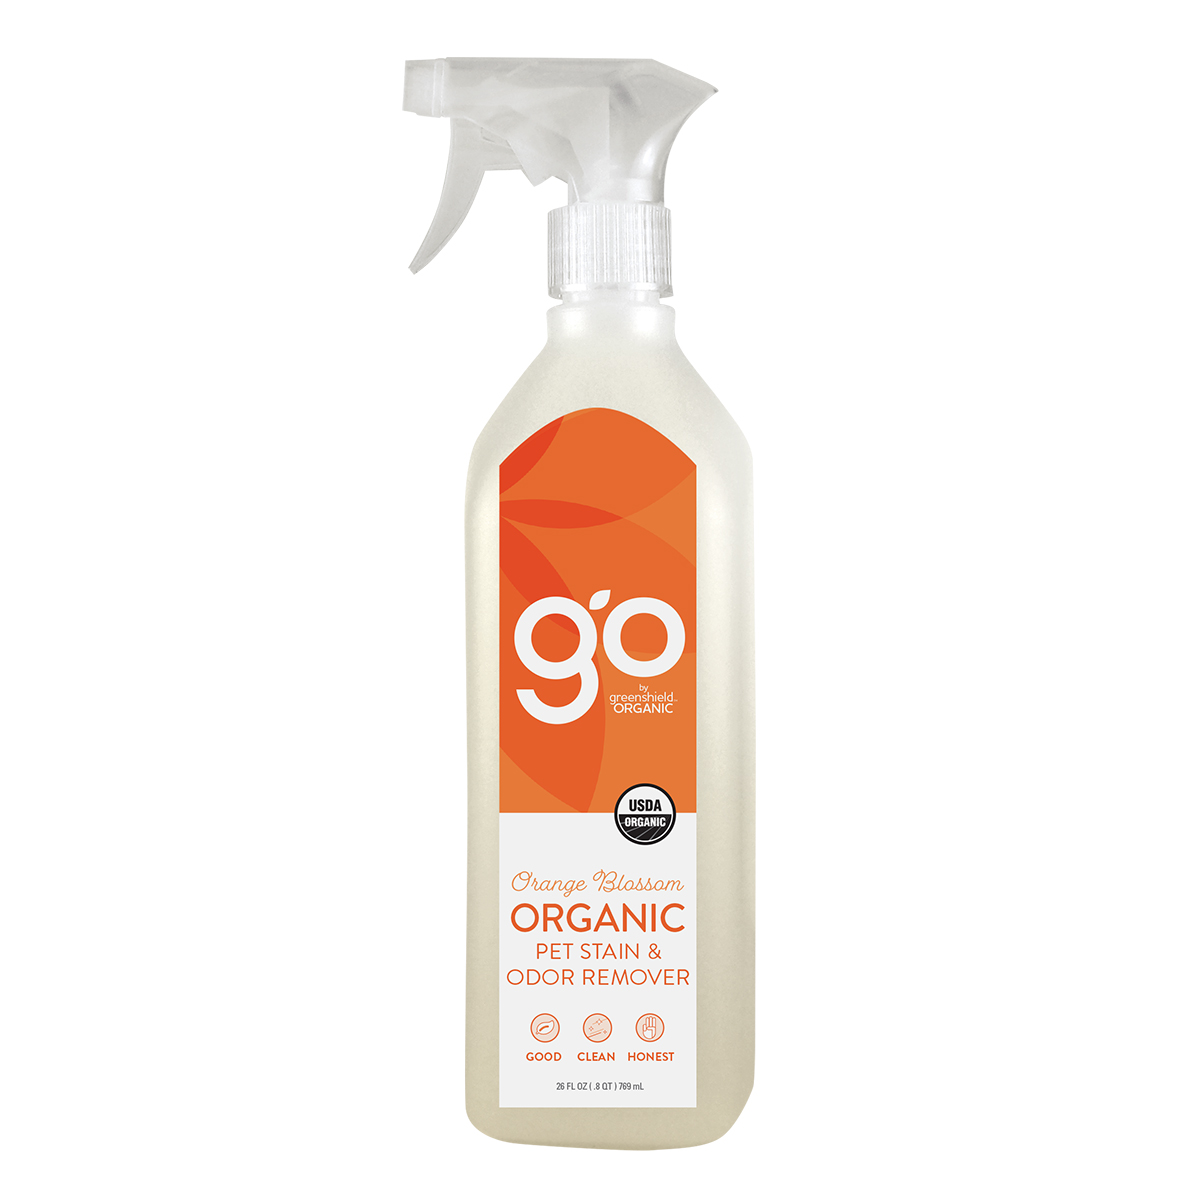 GO by Greenshield Organic Pet Stain & Odor Remover at walmart